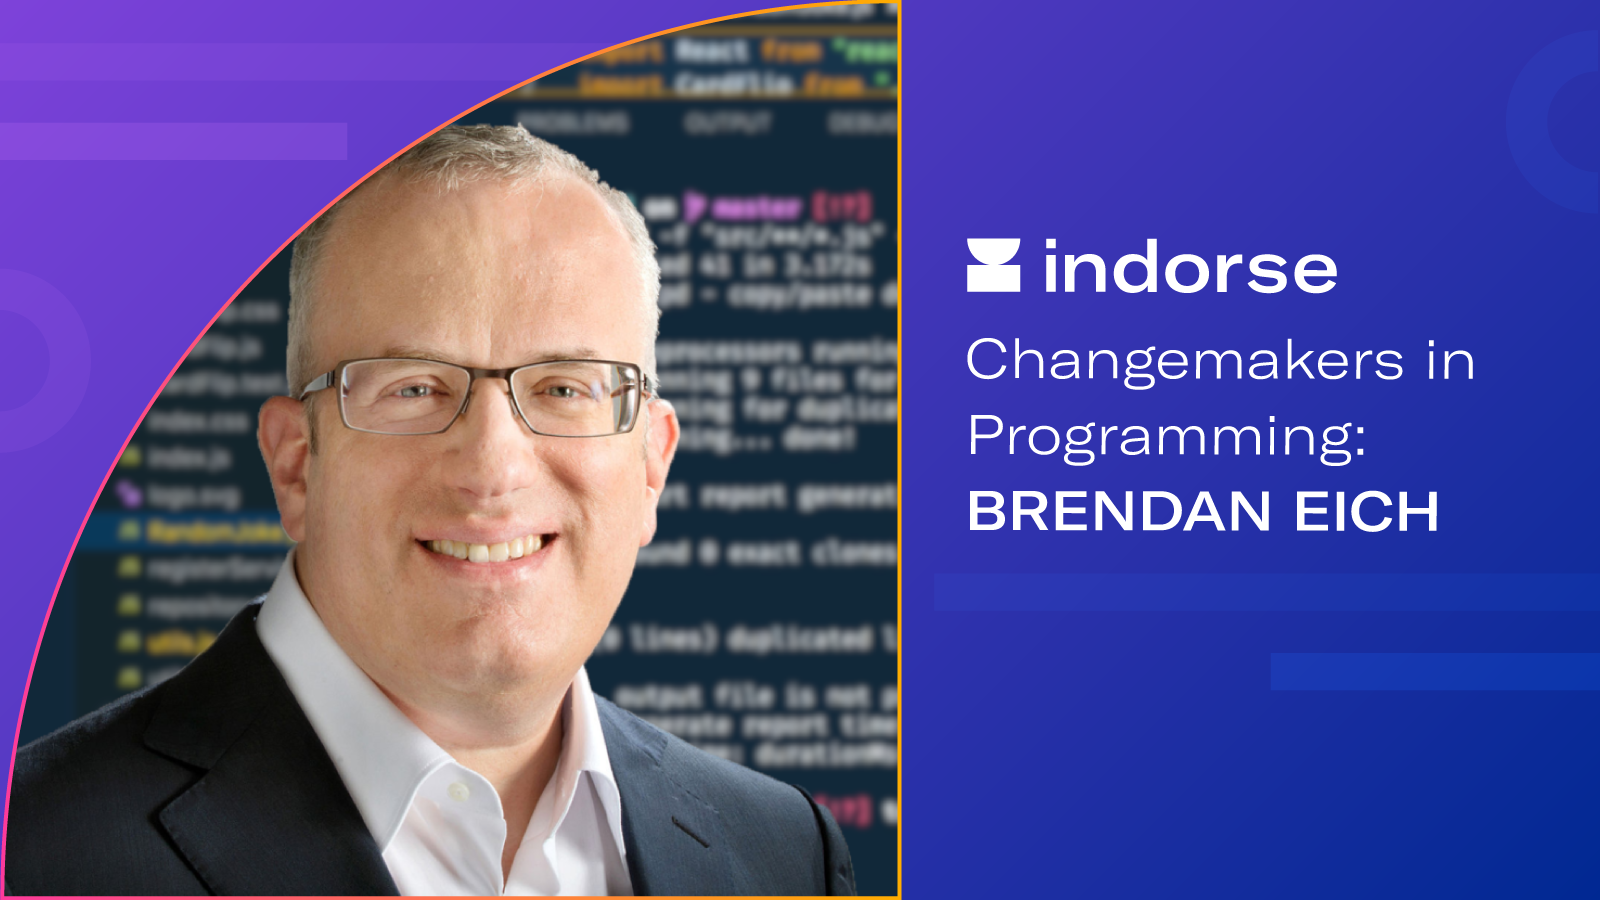 /changemakers-in-programming-brendan-eich-e43f2cc7d269 feature image